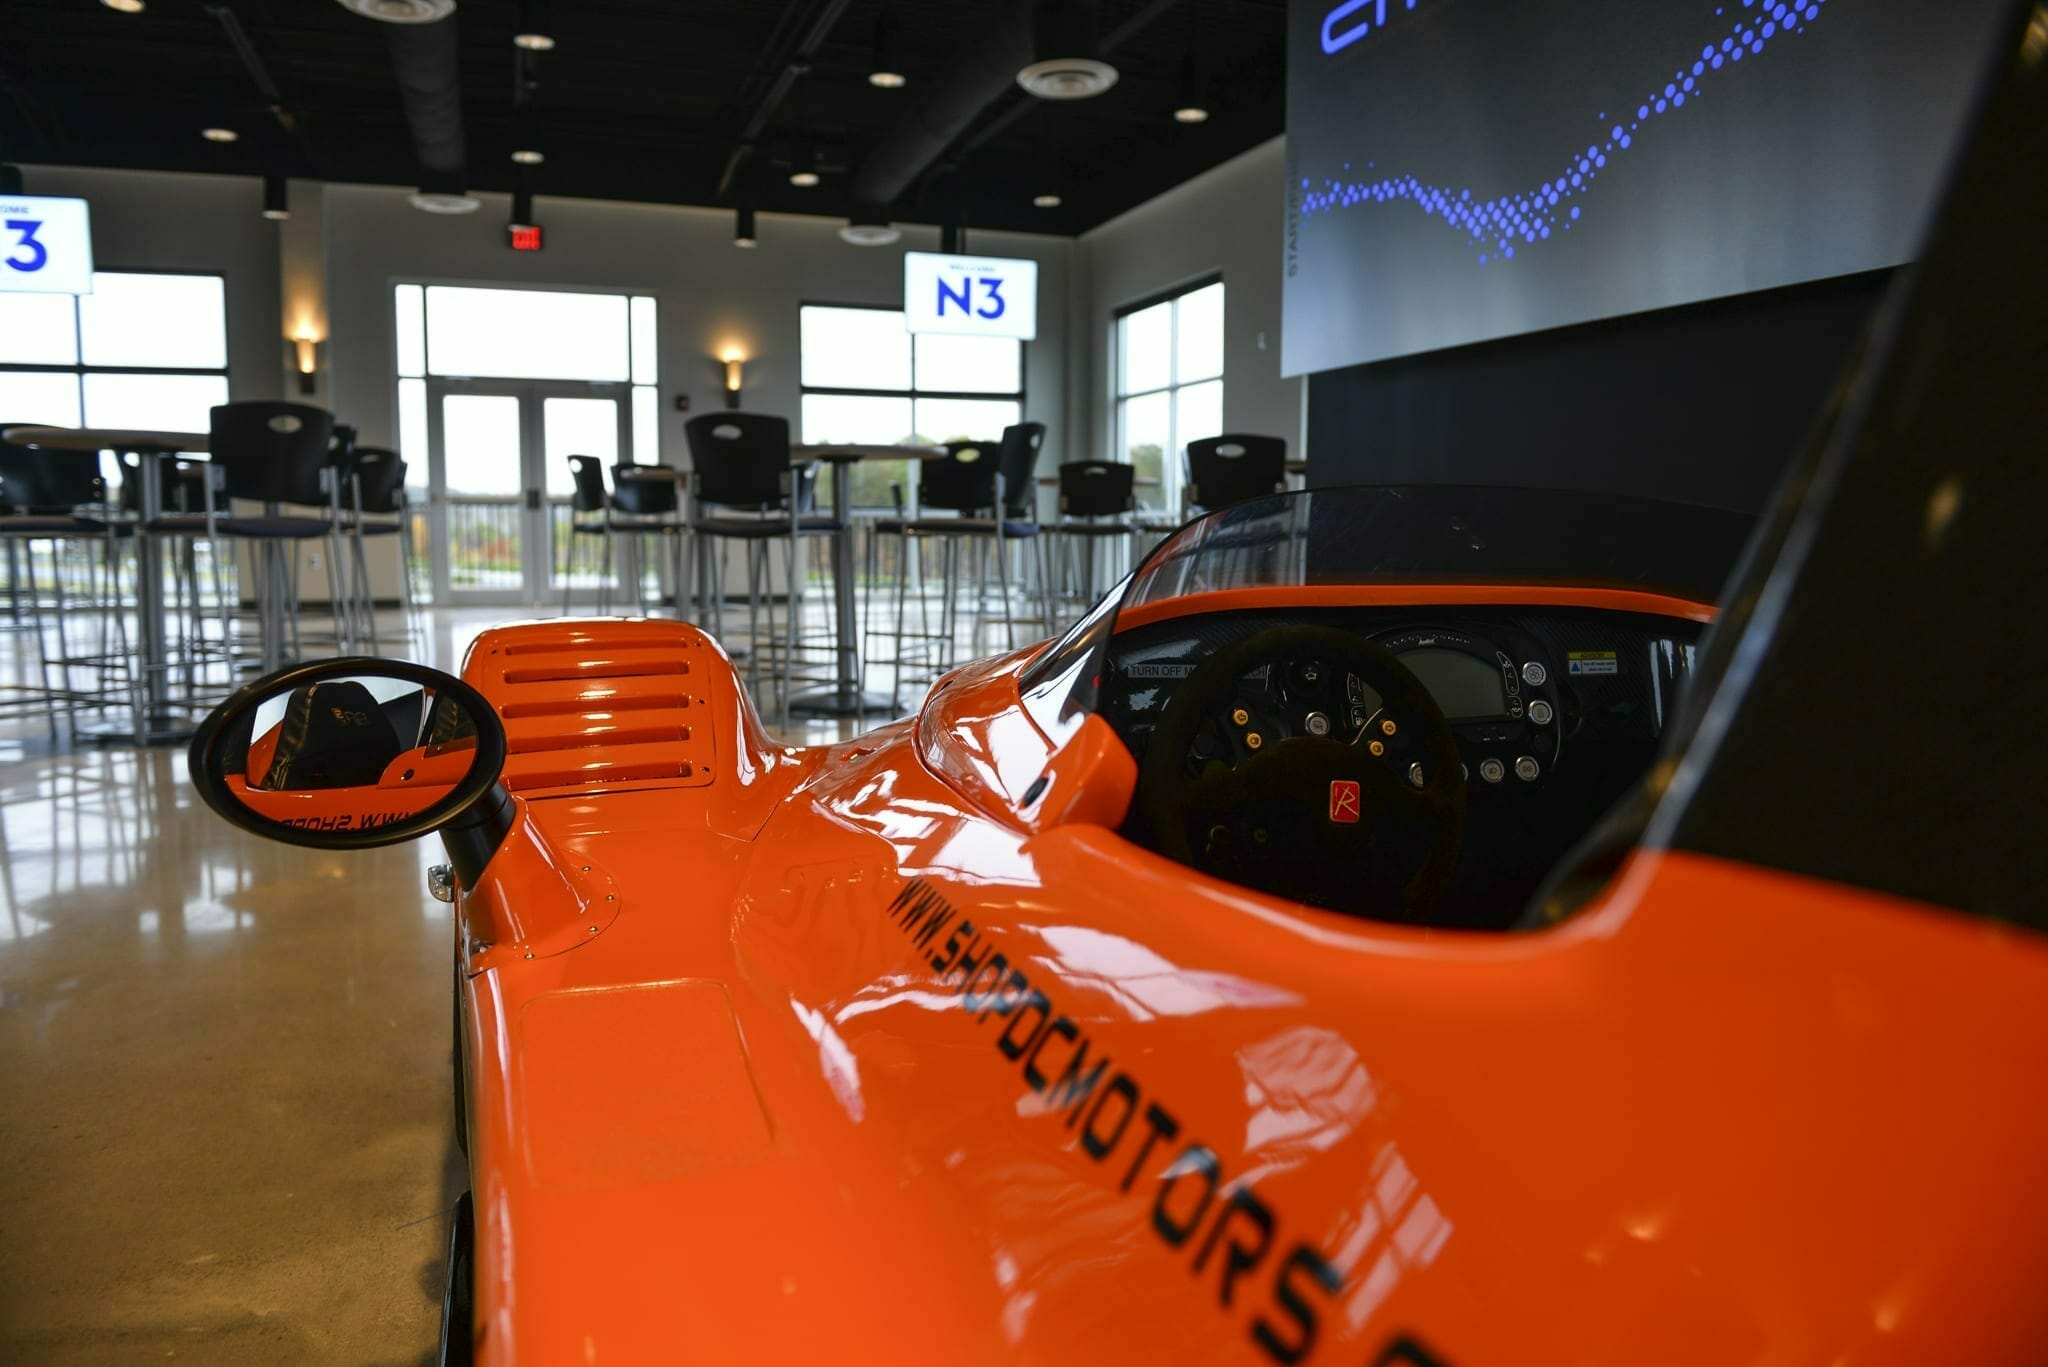 Venue with Orange Car